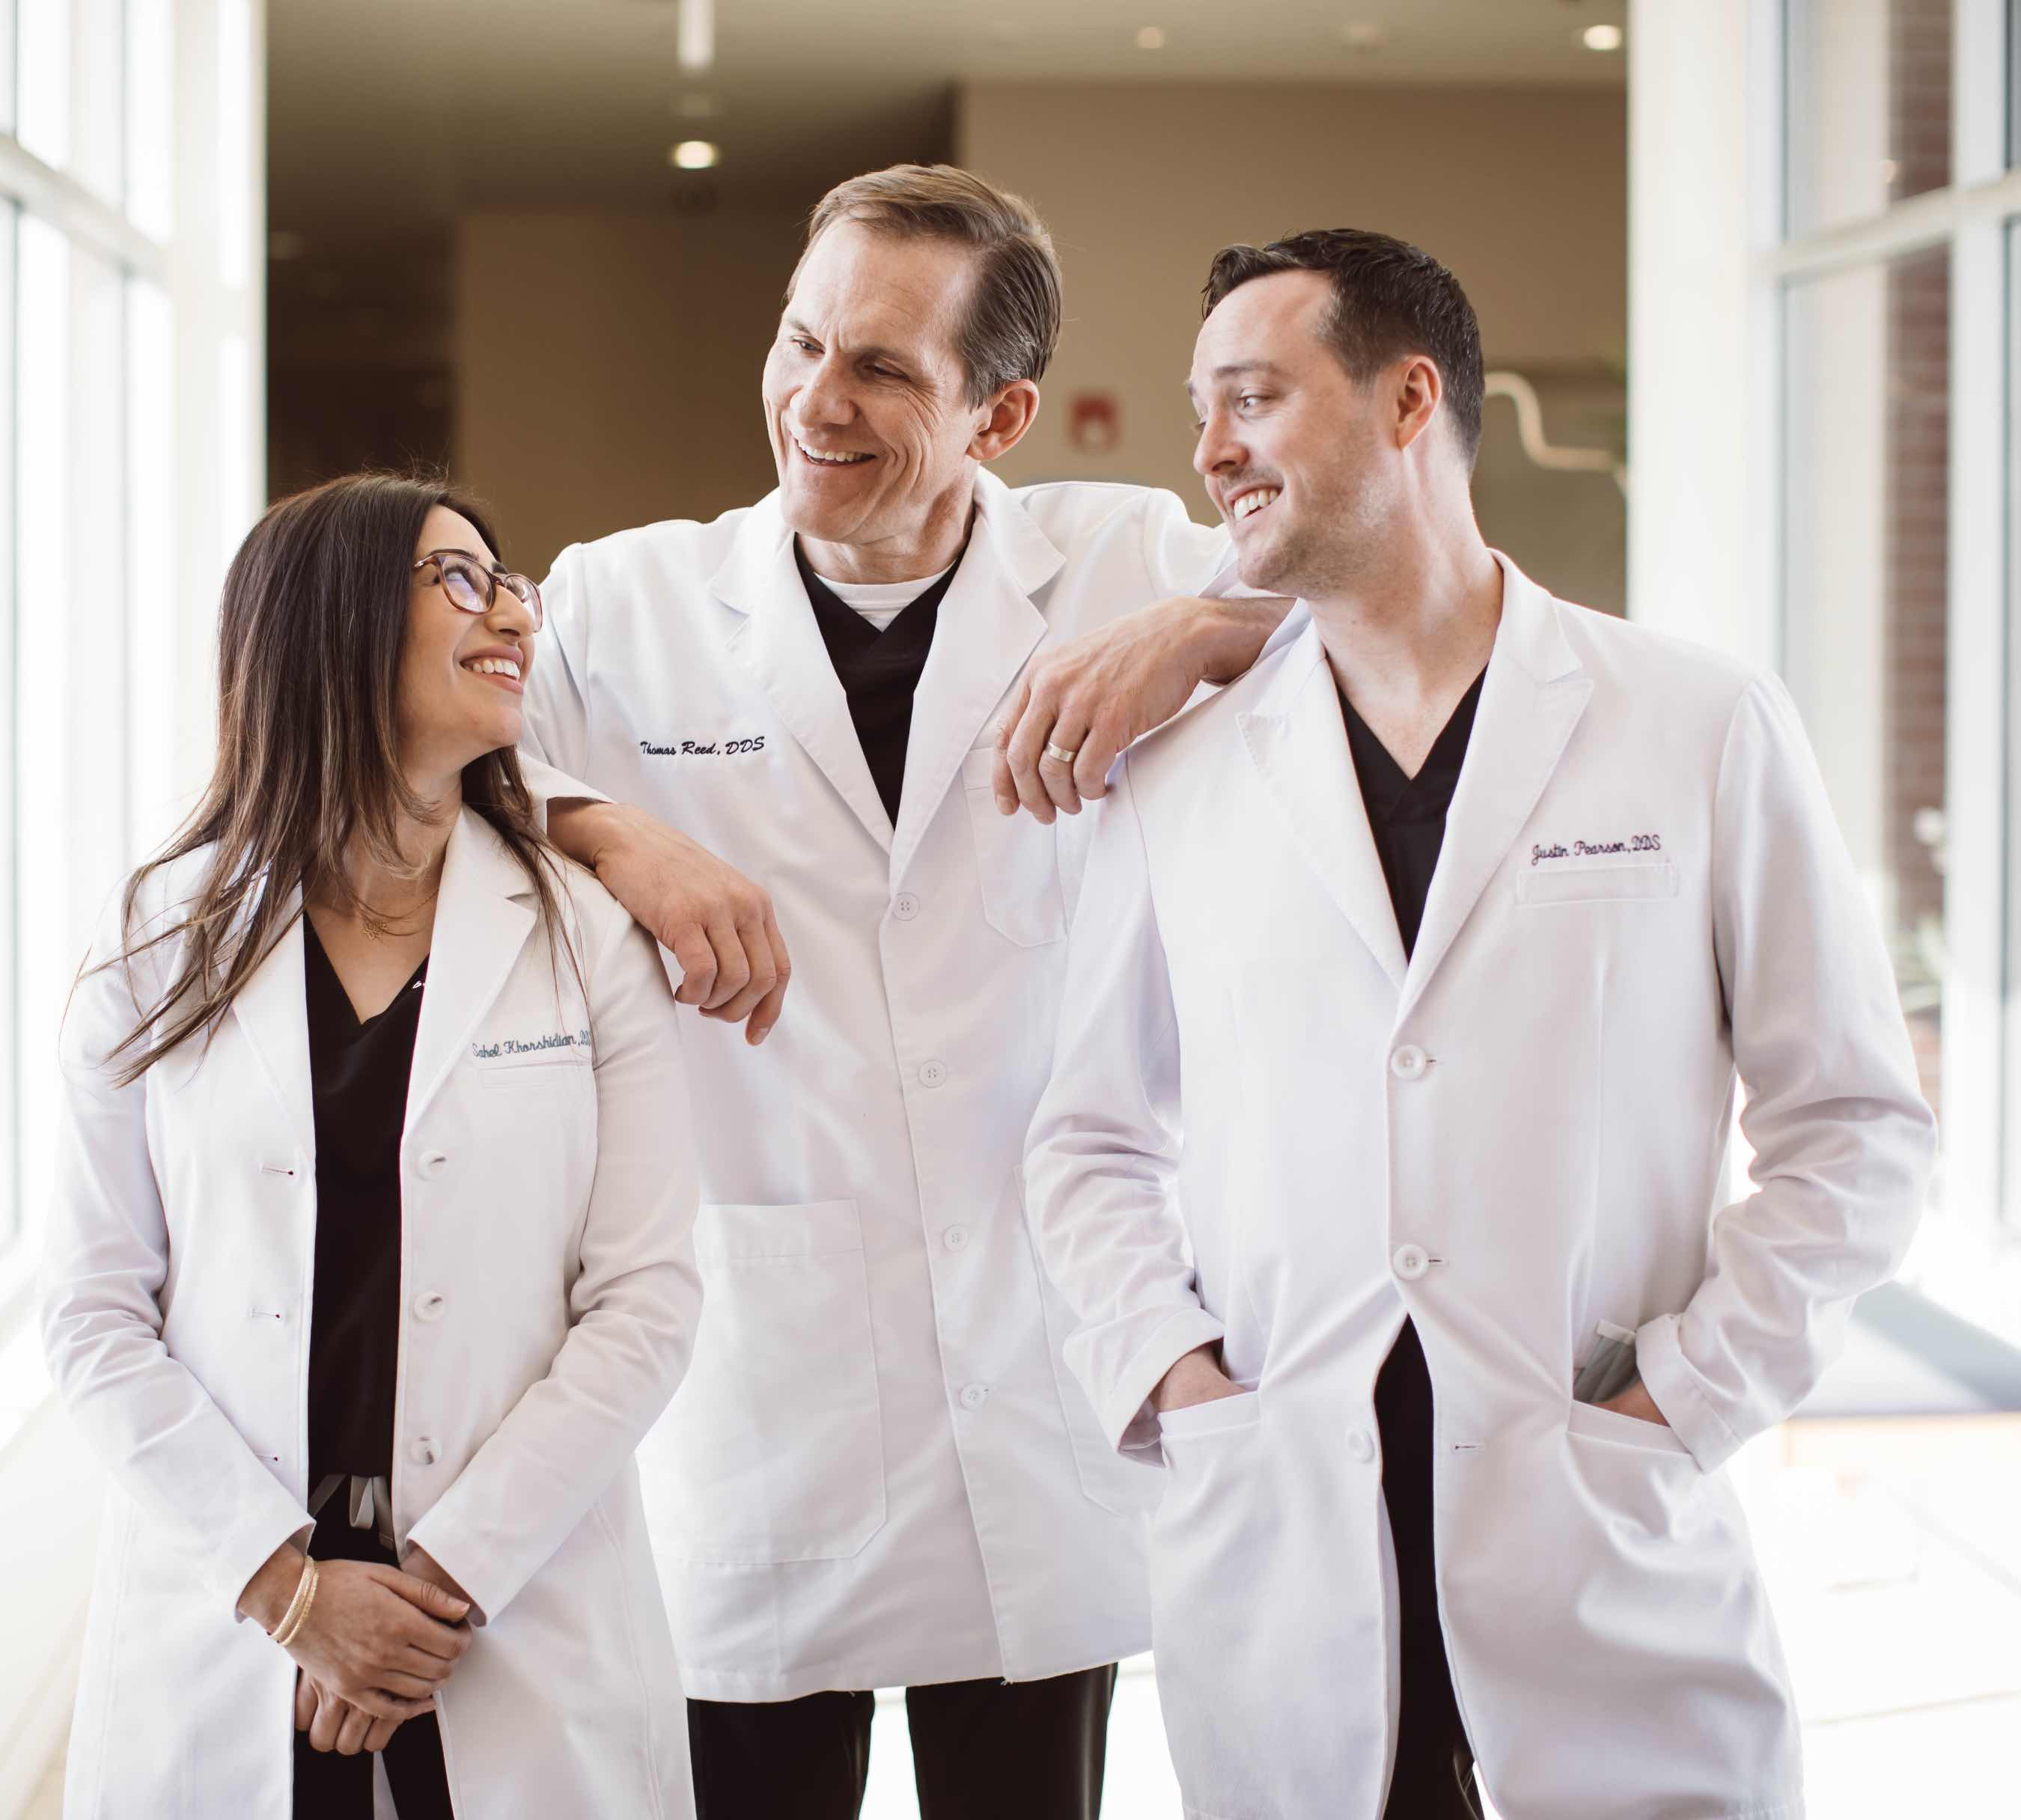 Photo of Englewood dentists Dr. Sahel Khorshidian, Dr. Thomas Reed, and Dr. Justin Pearson